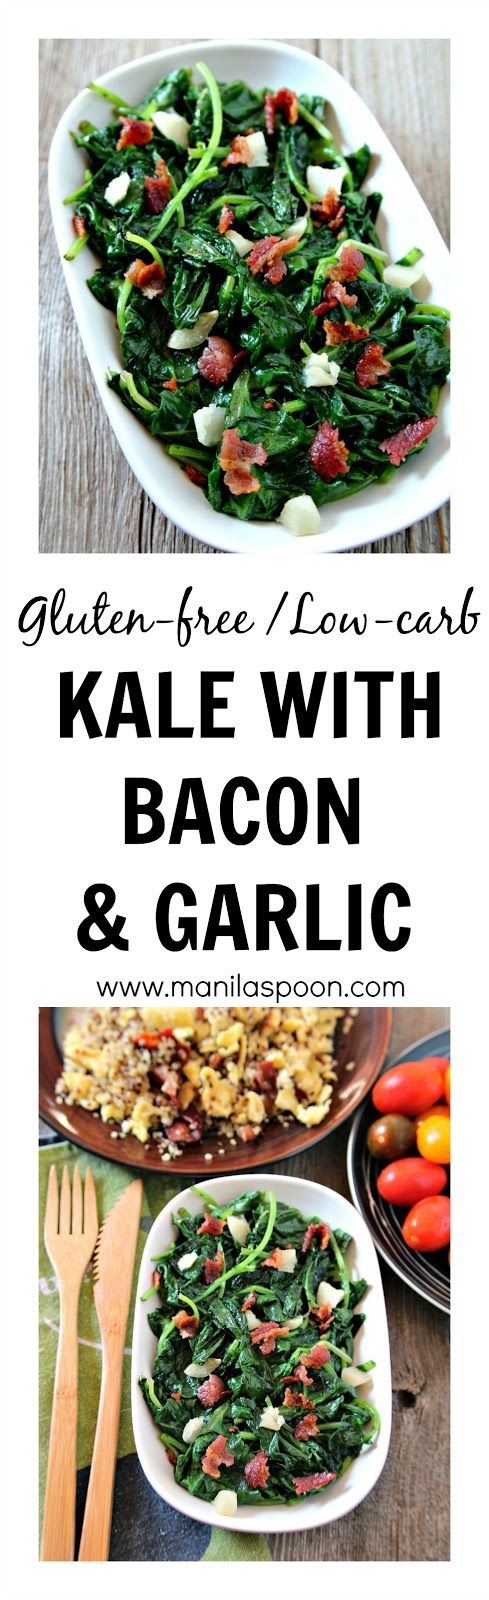 Who says Kale cannot taste good? Add some bacon and garlic and you're all set - Sauteed Kale with Bacon and Garlic. Naturally, gluten-free and low-carb!